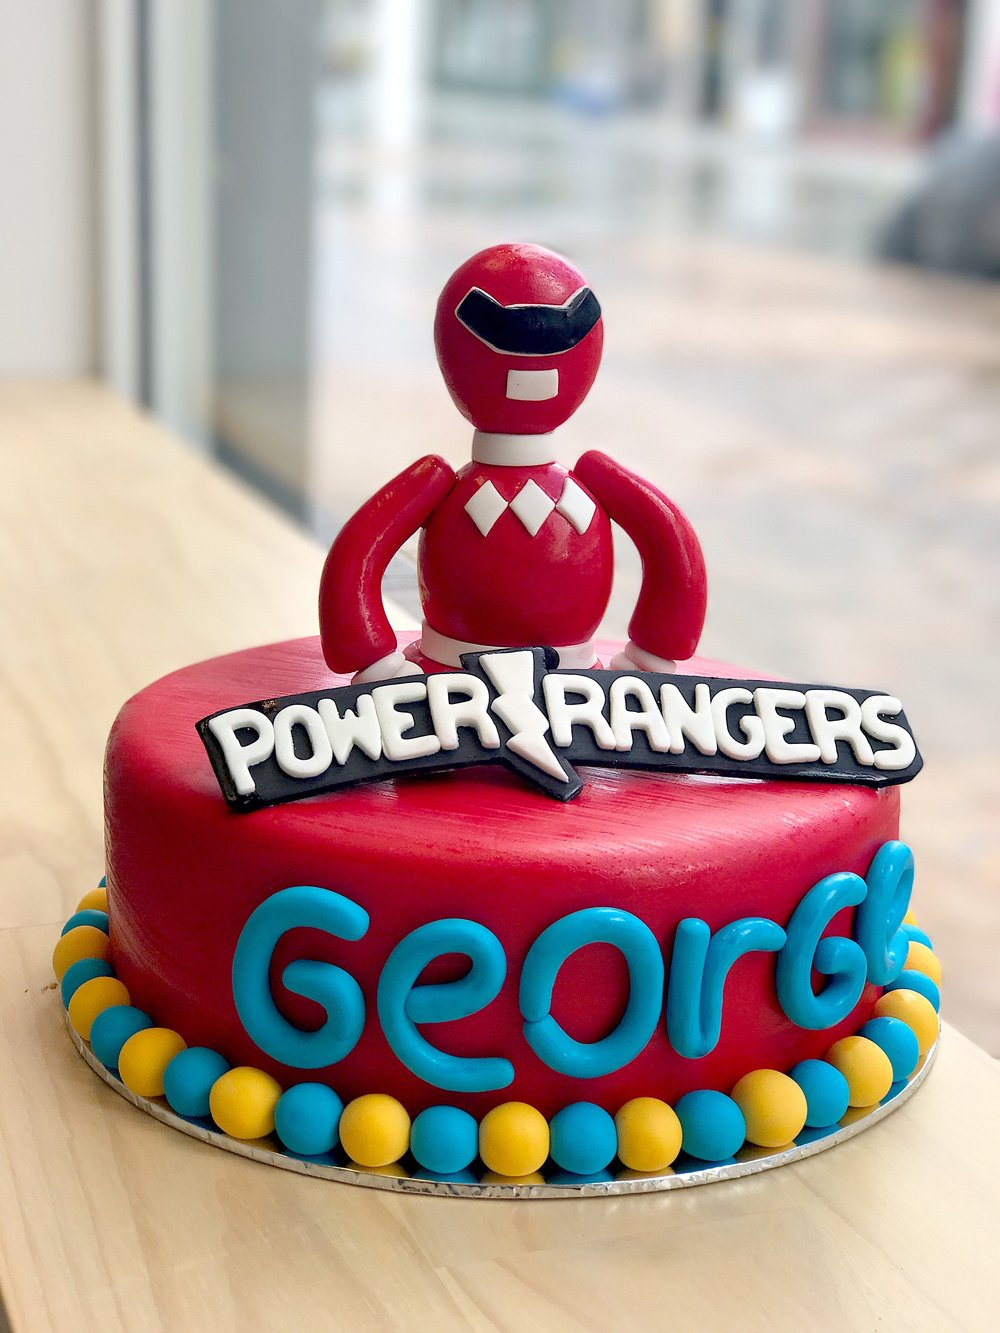 Power rangers cake.jpg